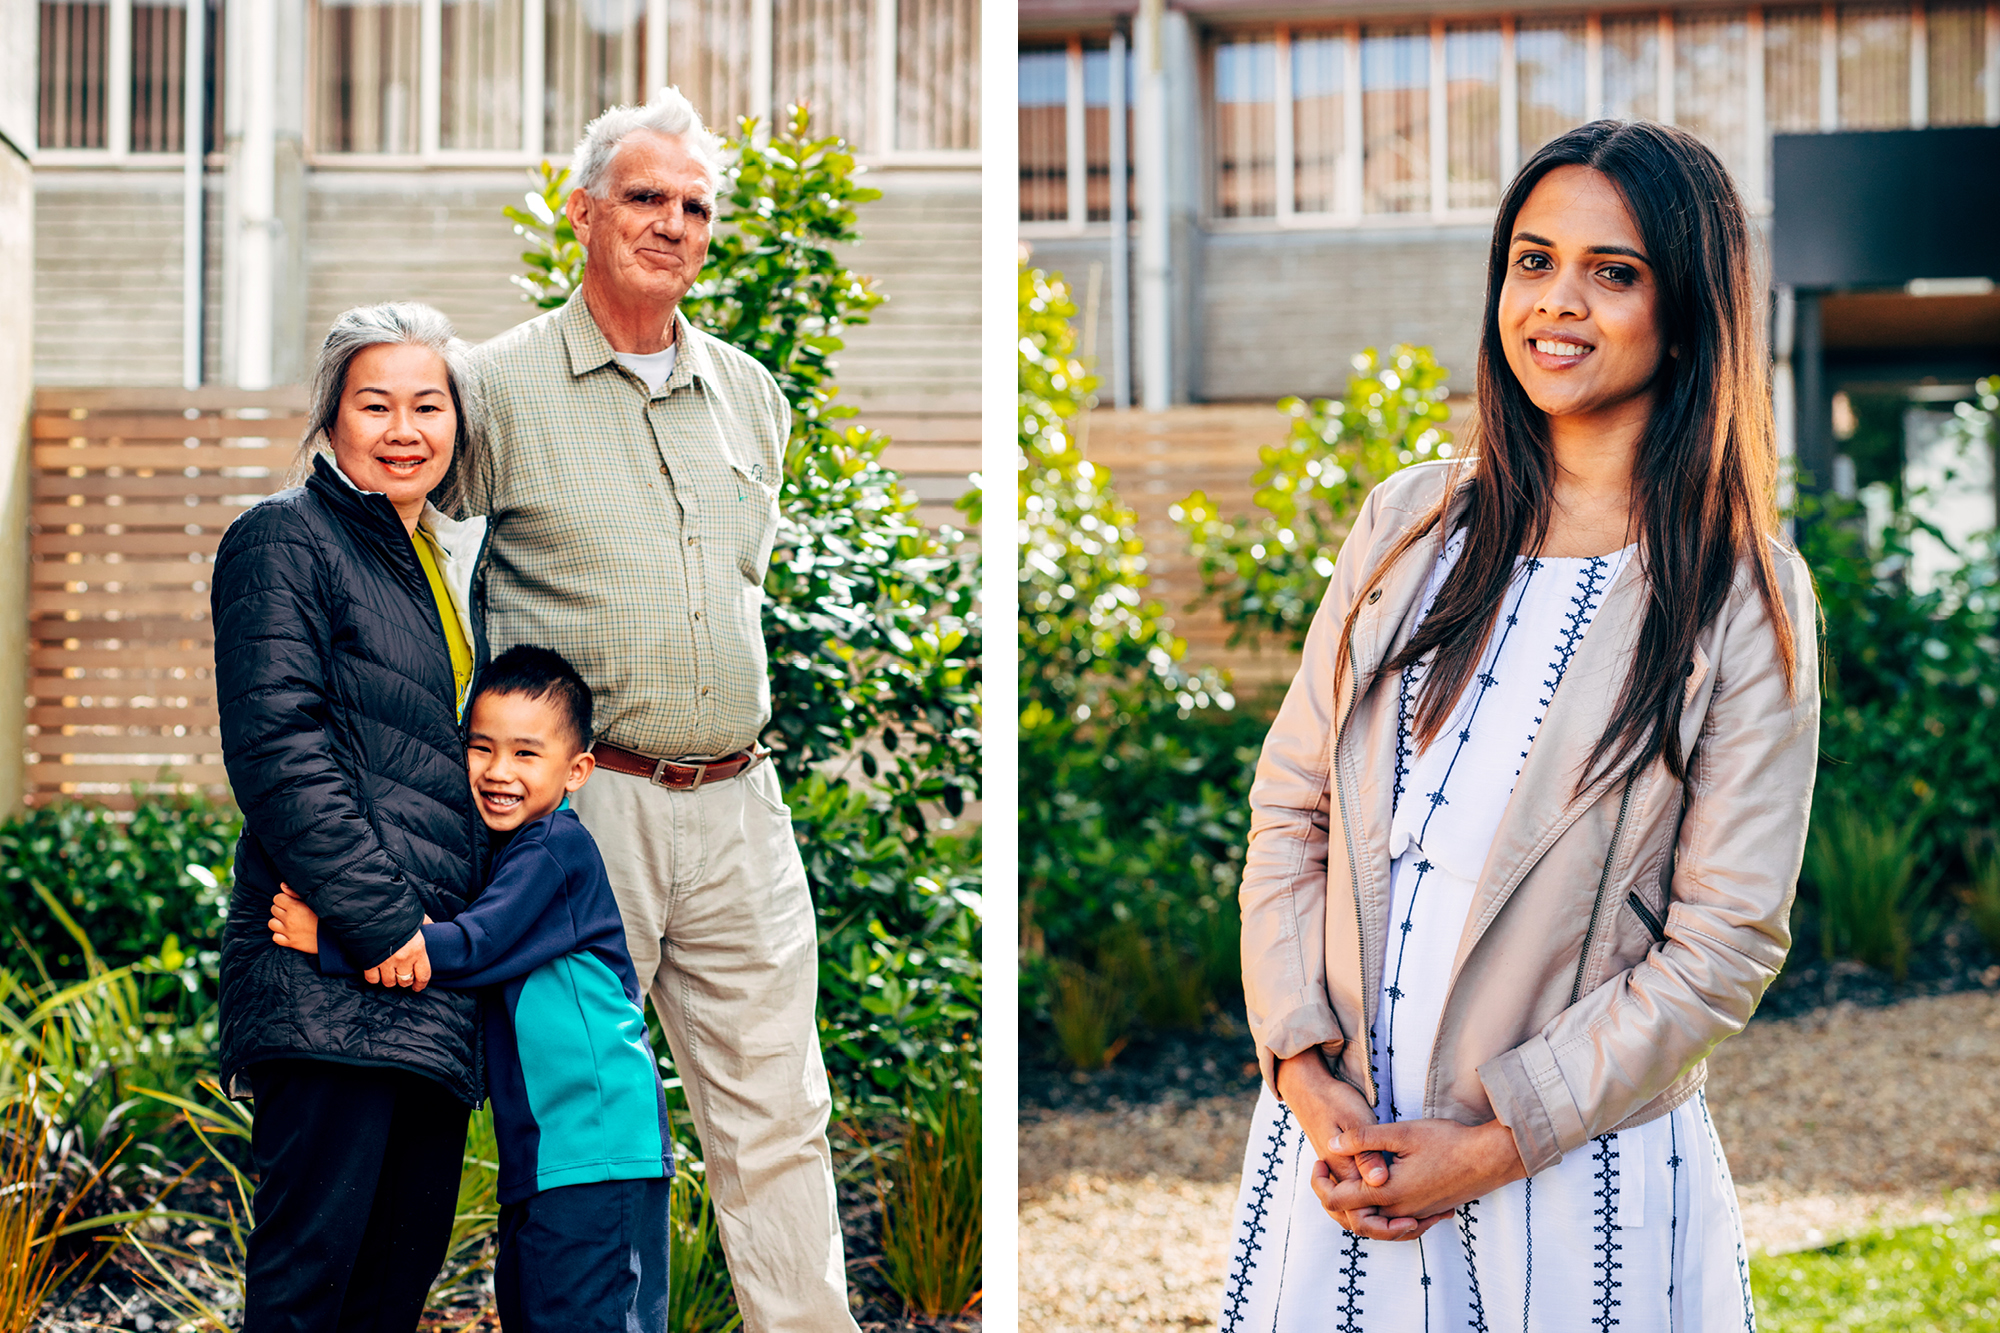 To help sell FABRIC, a new apartment development in Onehunga, Richards Partners created collateral that profiled people who had already bought apartments – why they did it, what they love about the neighbourhood, and the stories behind how they got there.